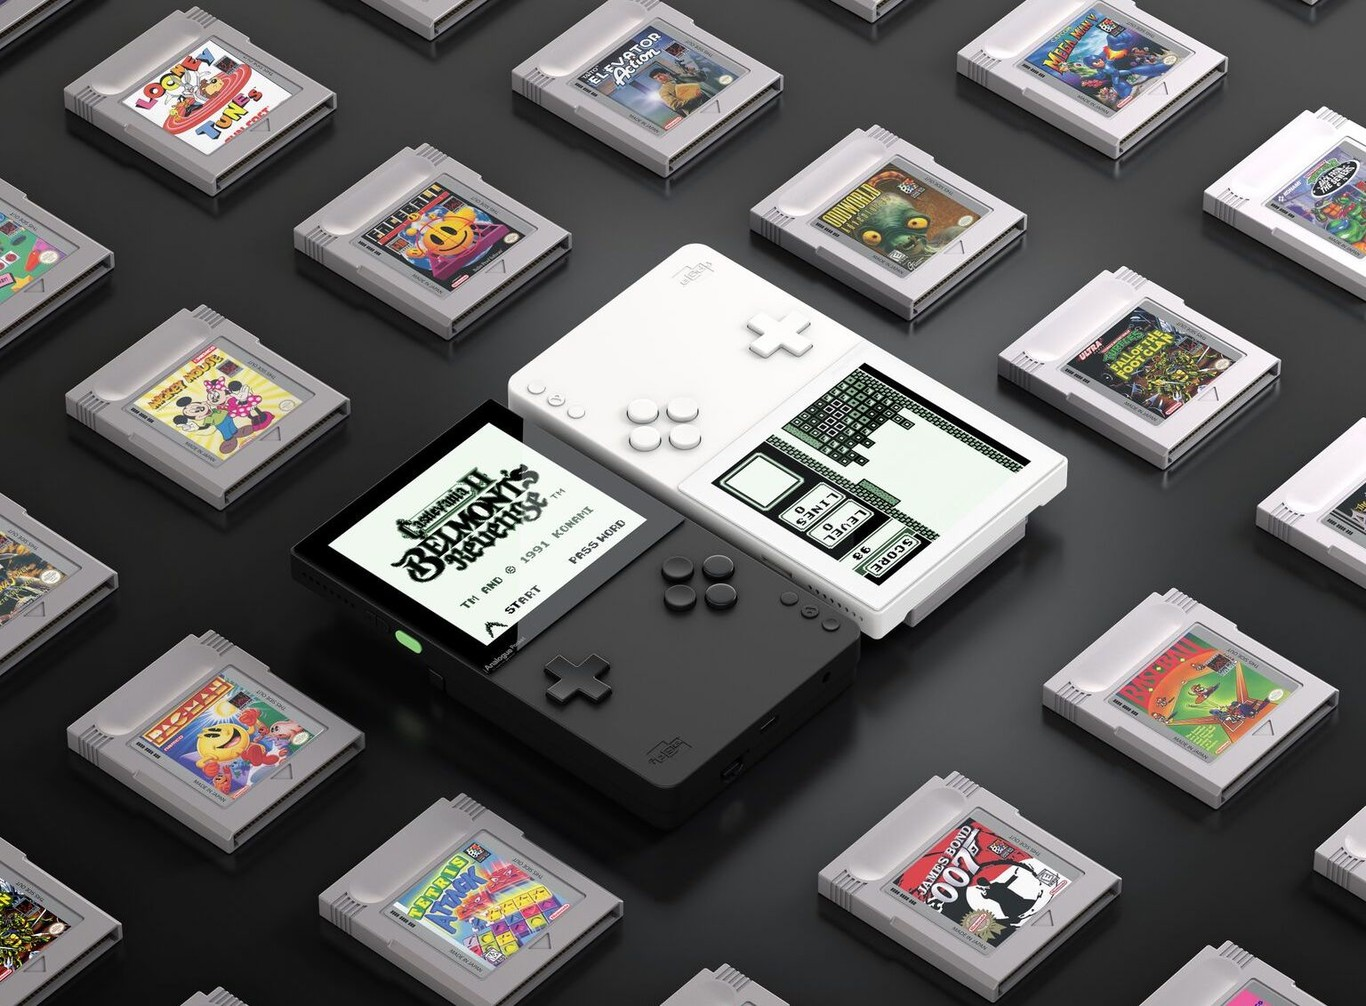 Analogue Pocket, esta consola portátil pretende revivir el Game Boy: compatible con sus cartuchos físicos,...